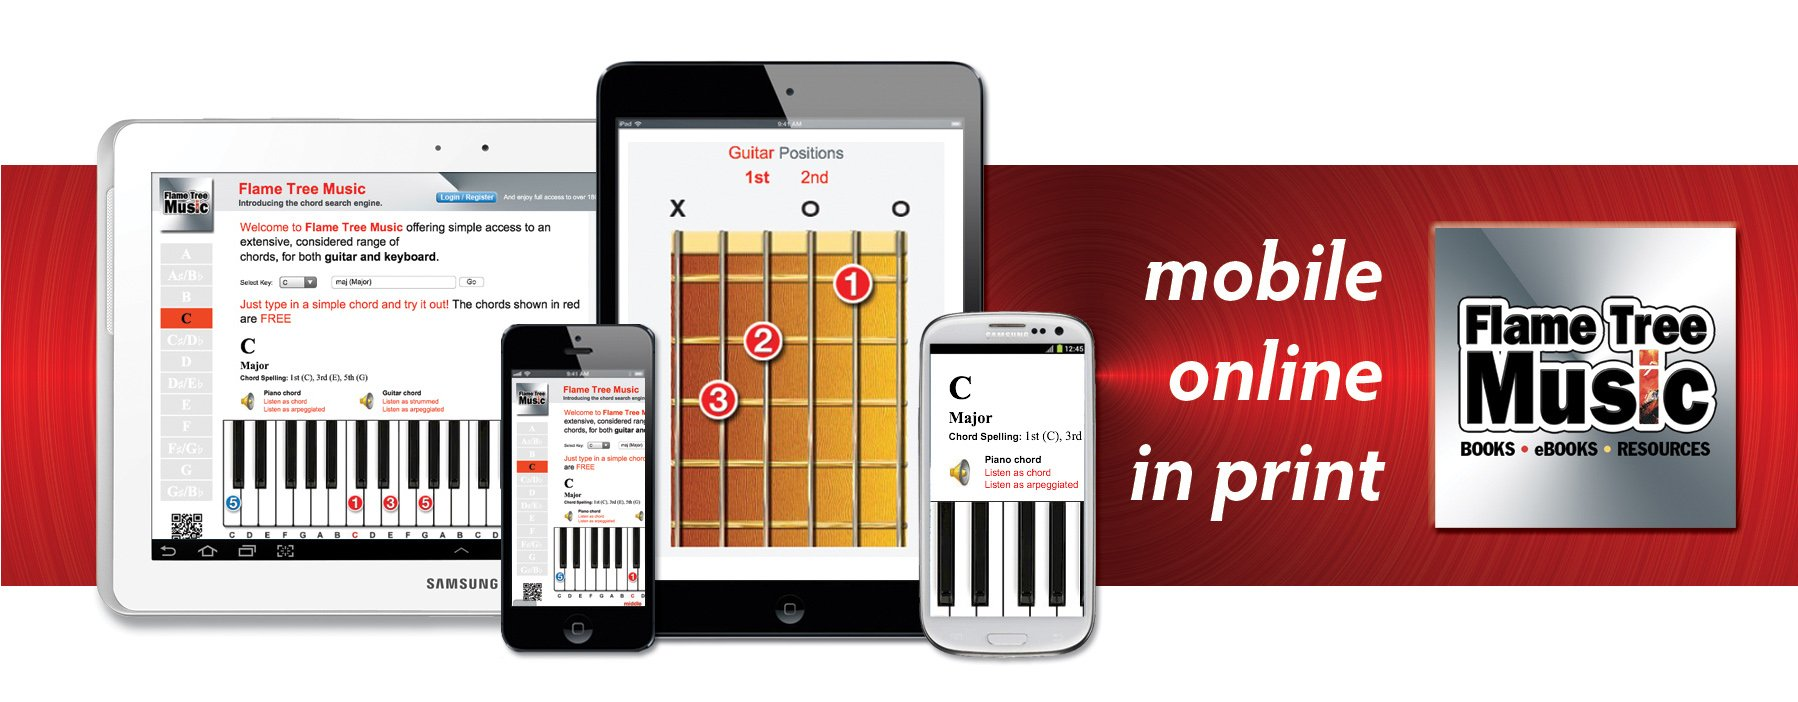 flame tree music, online, in print, mobile